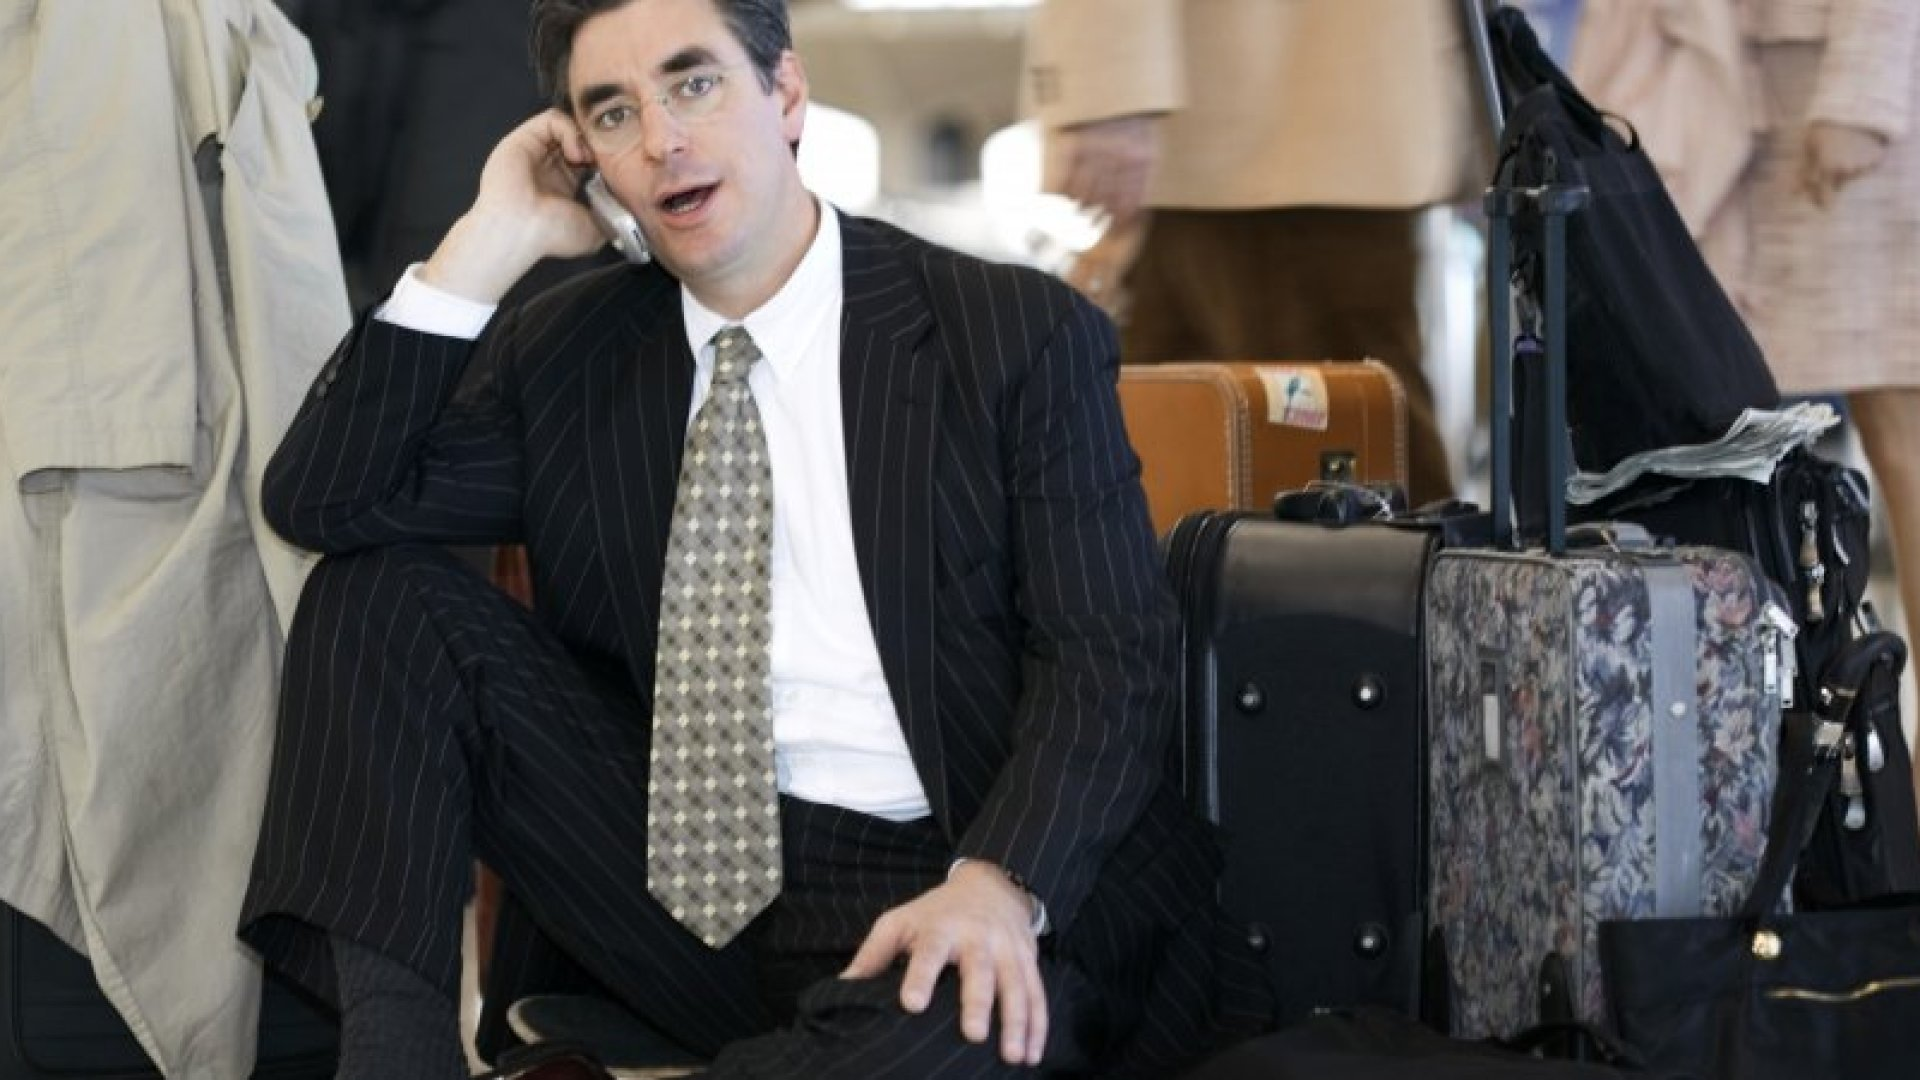 9 Must-Have Apps for Business Travelers